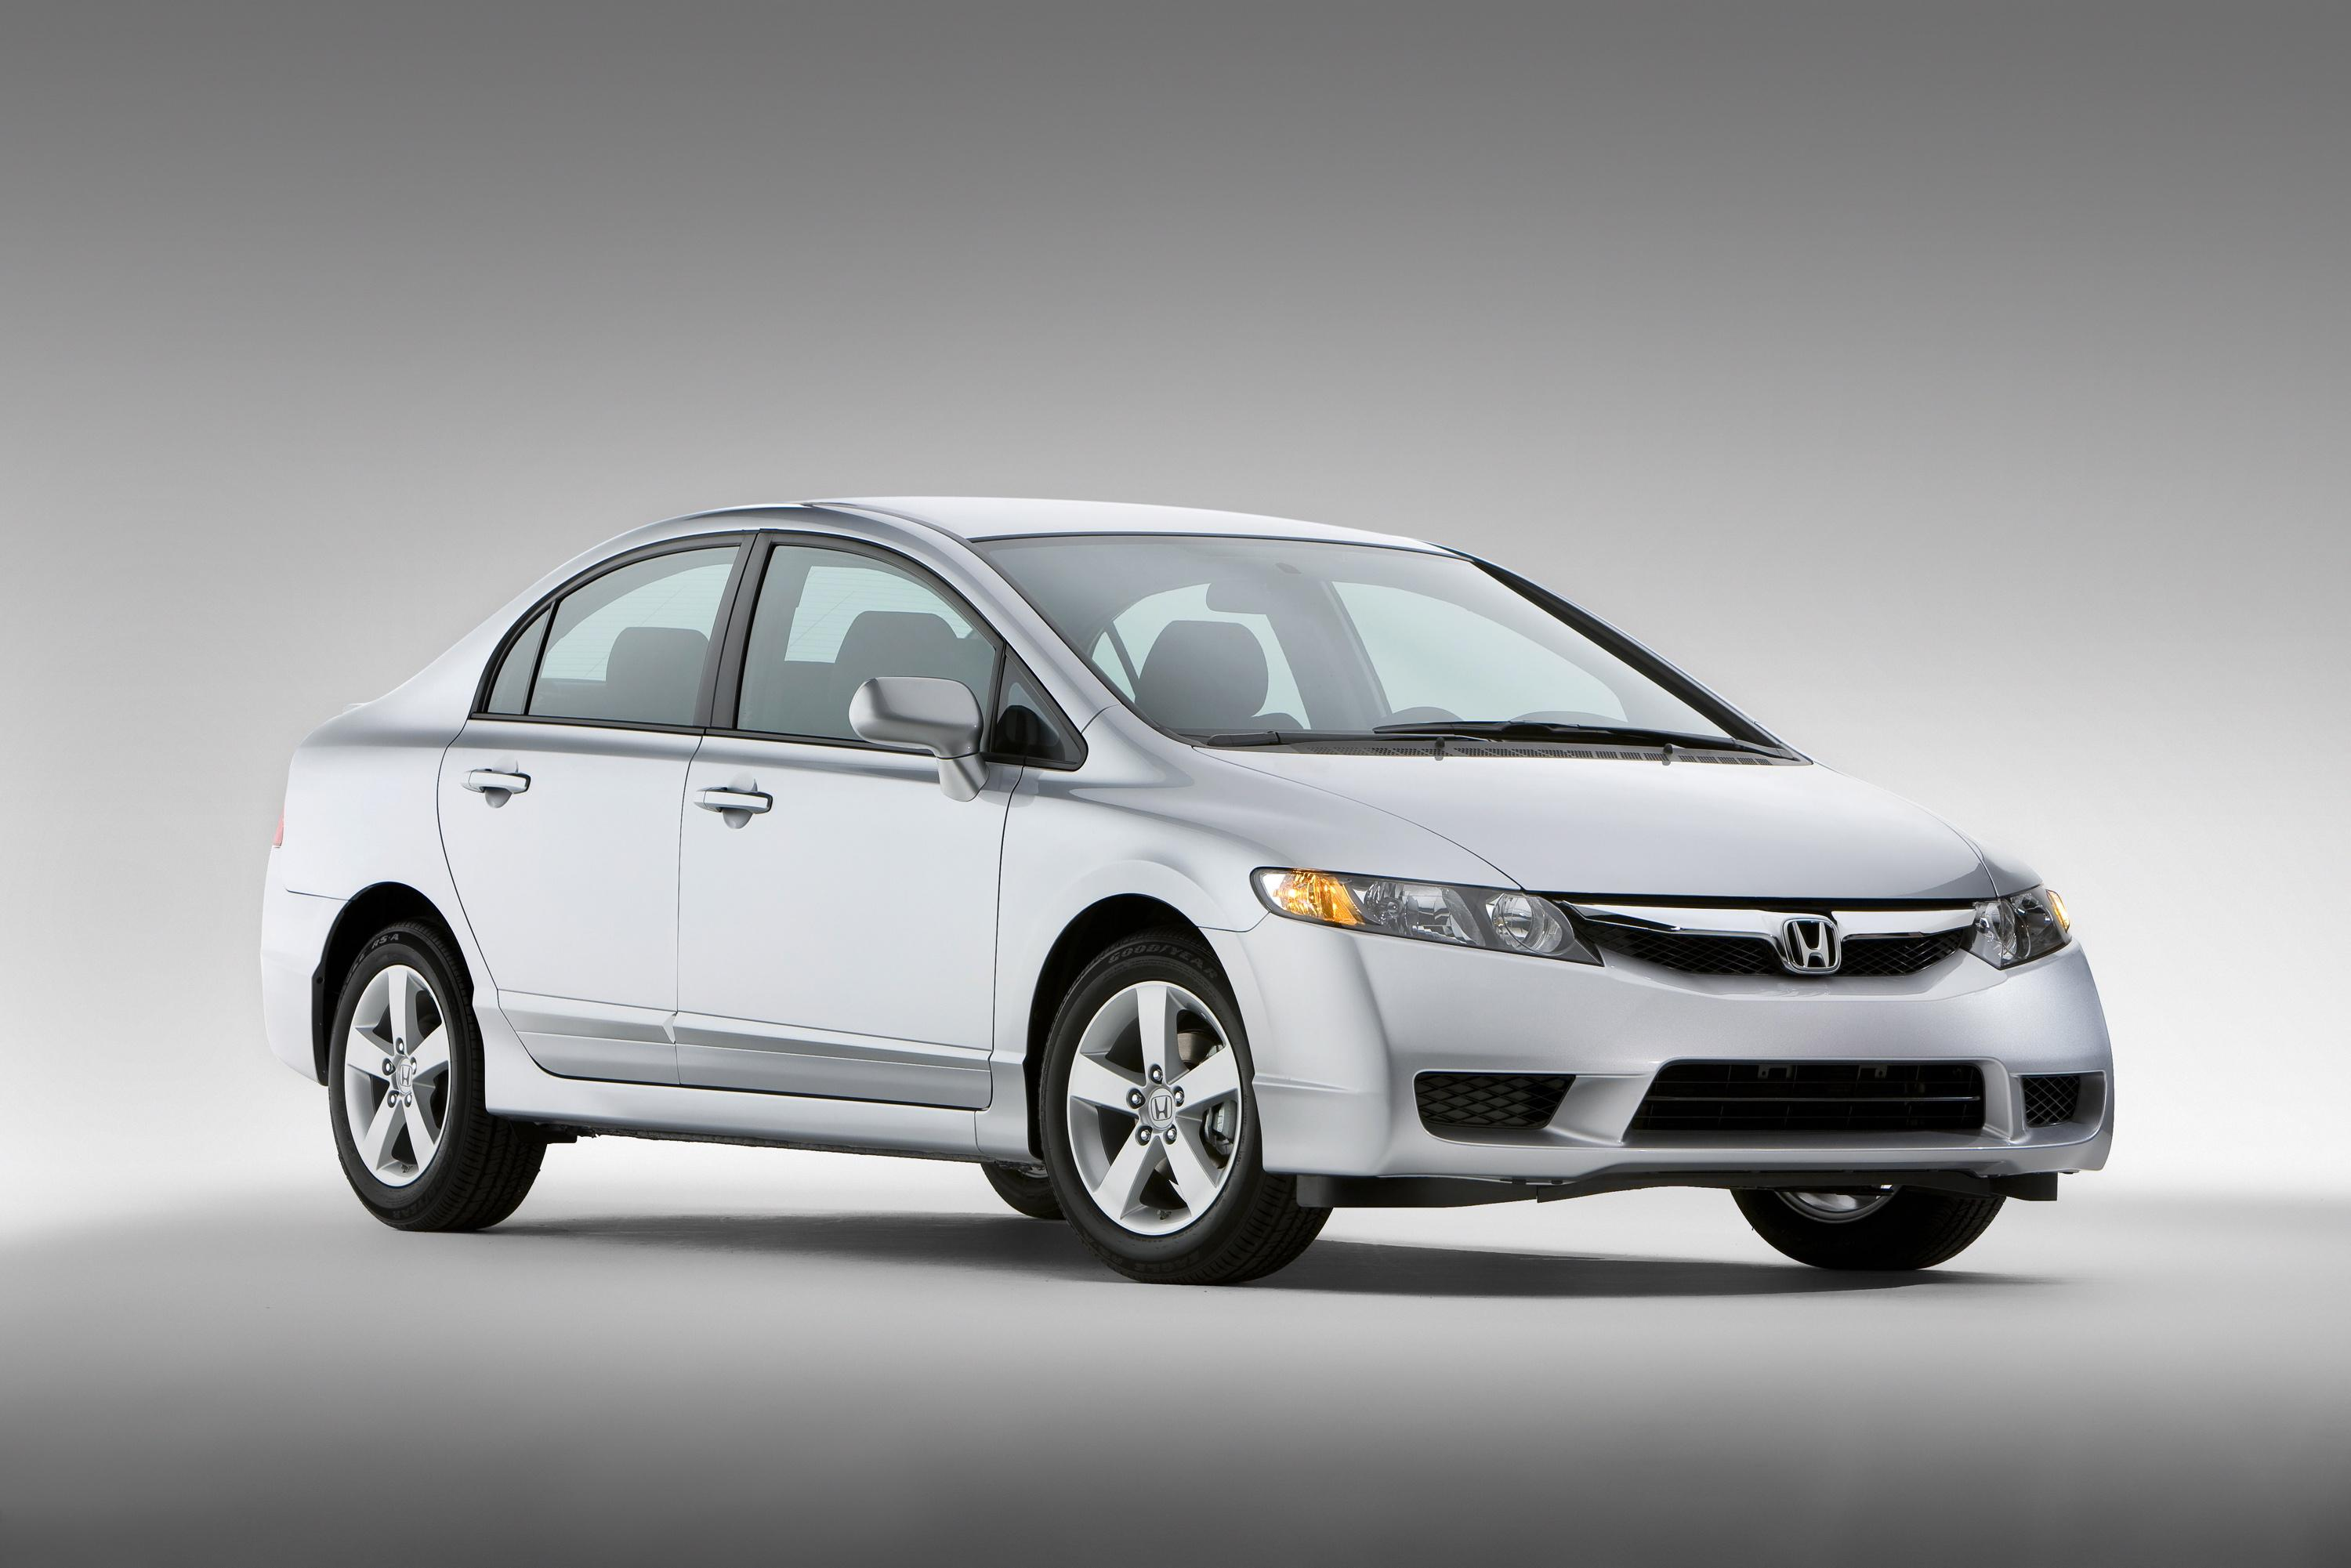 2009 Honda Civic Lx S Sedan